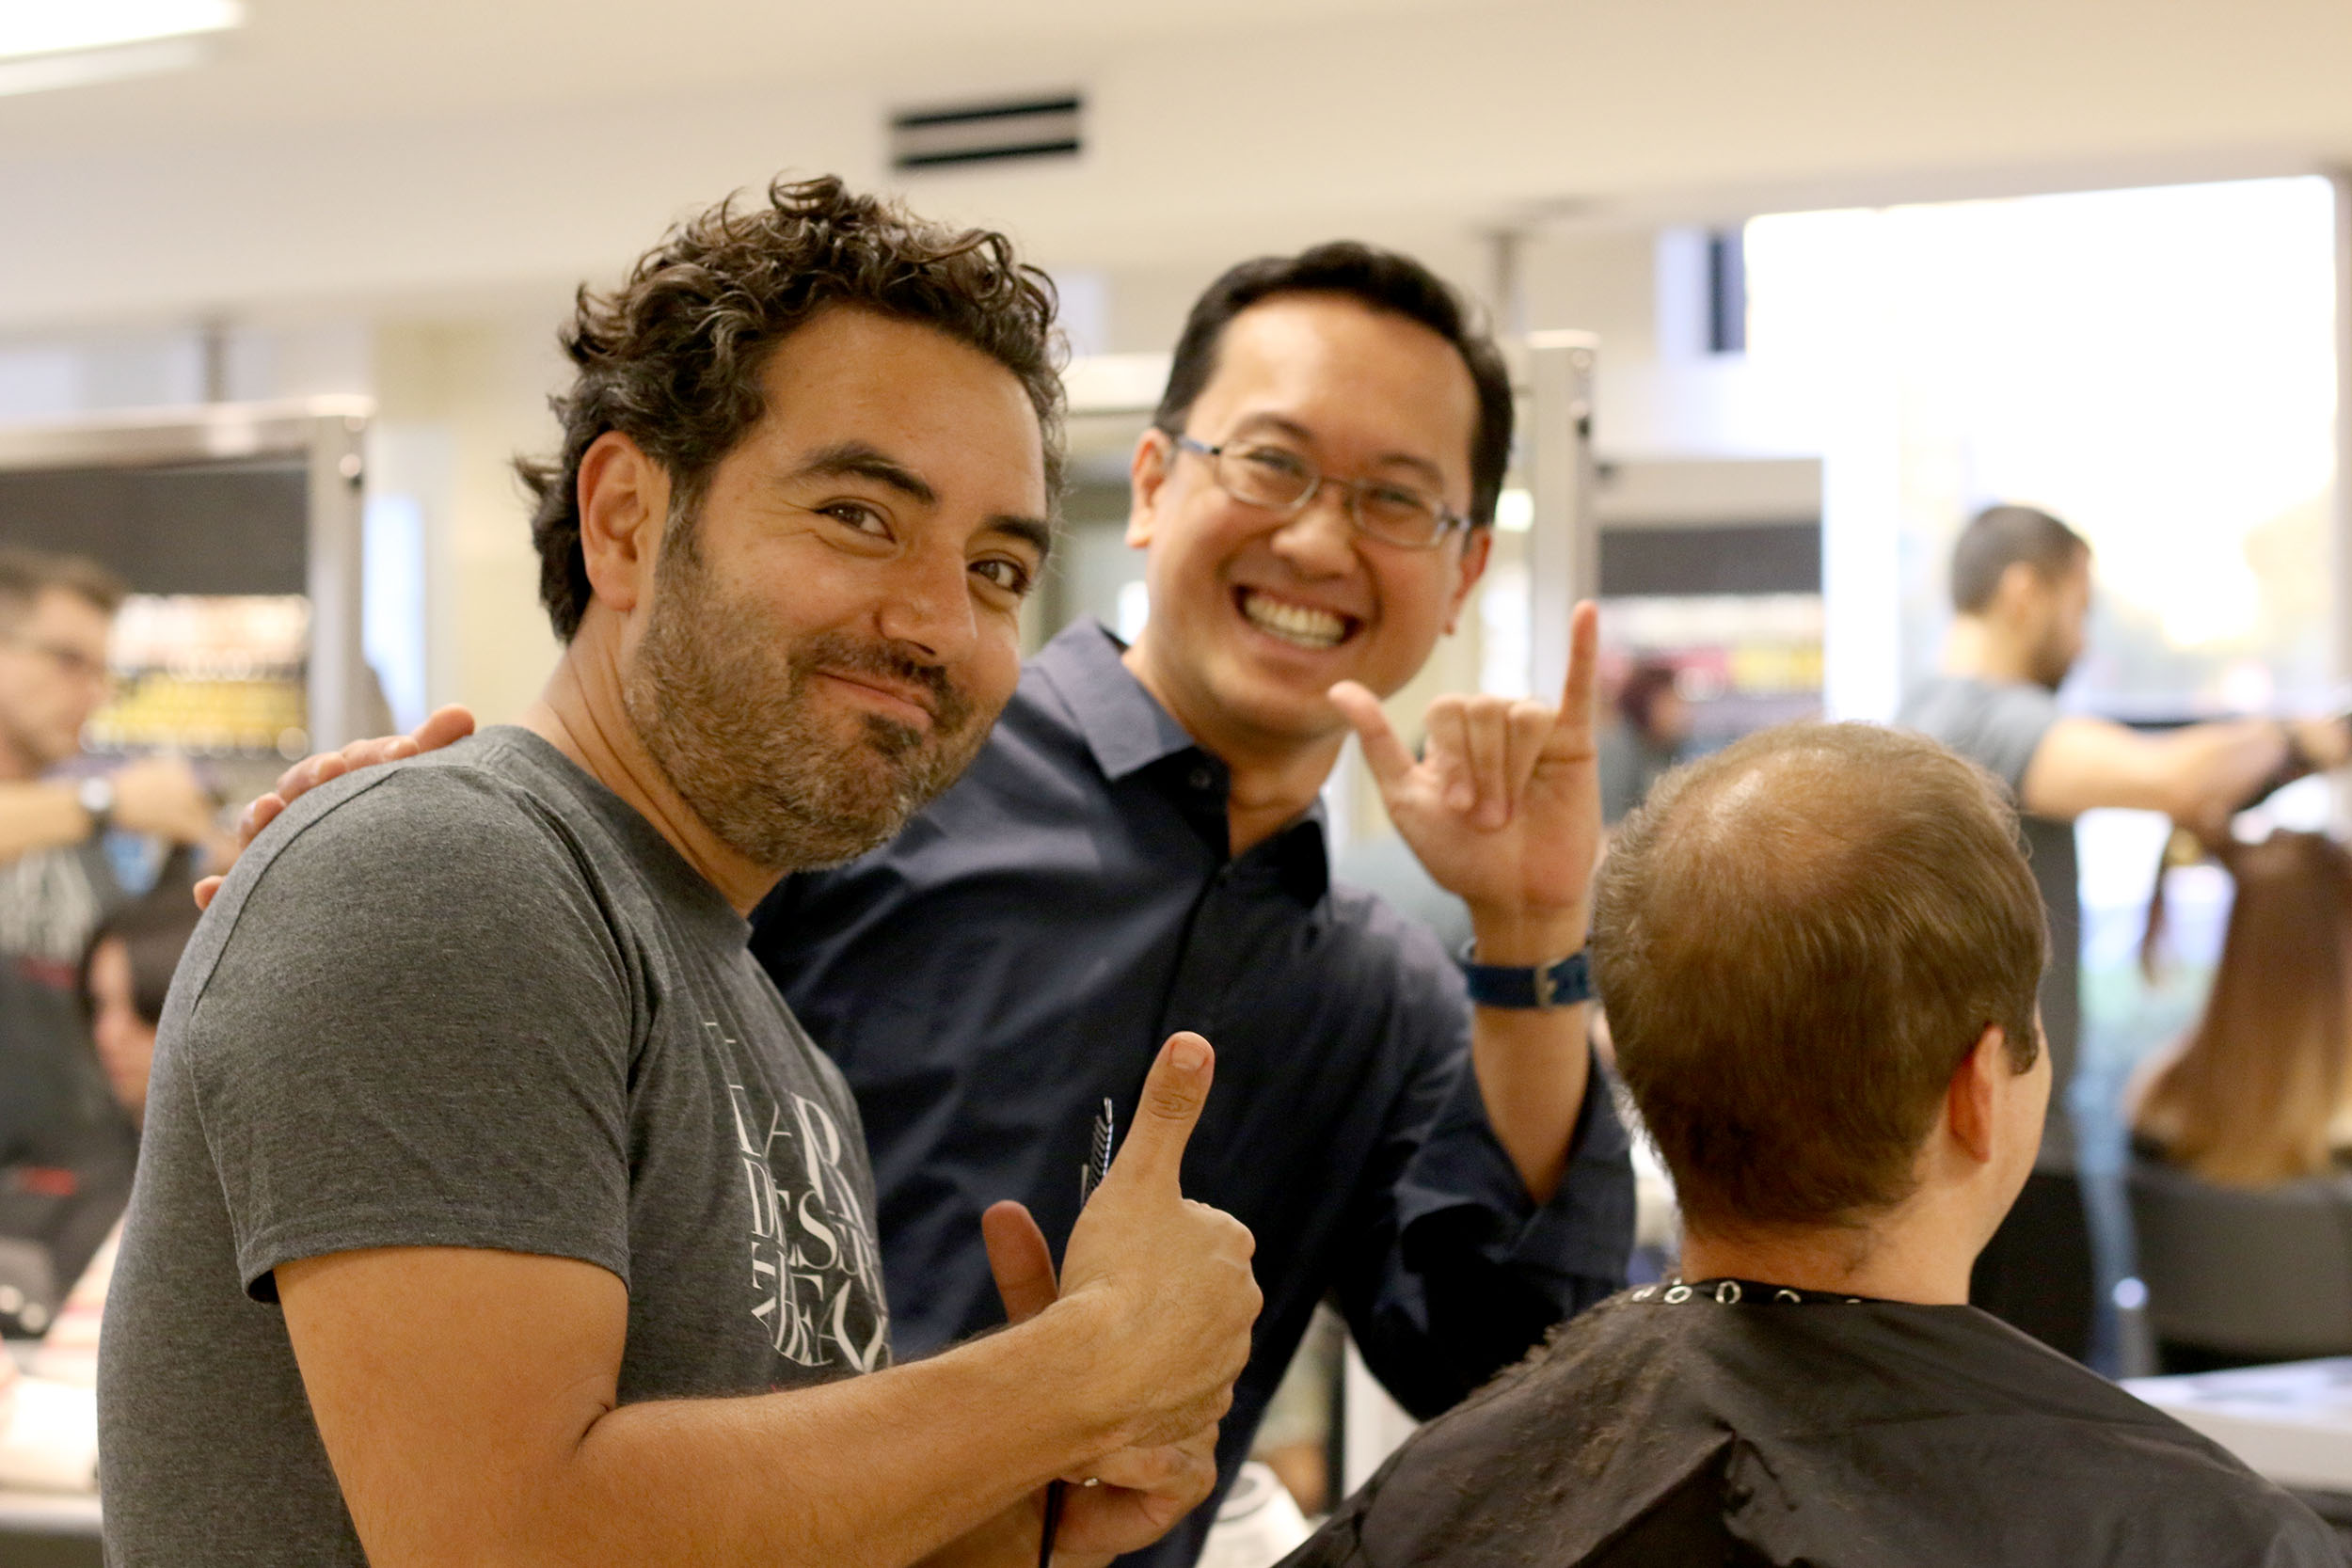 Hairdressers at Heart Raises Funds and Awareness for Homeless Youth